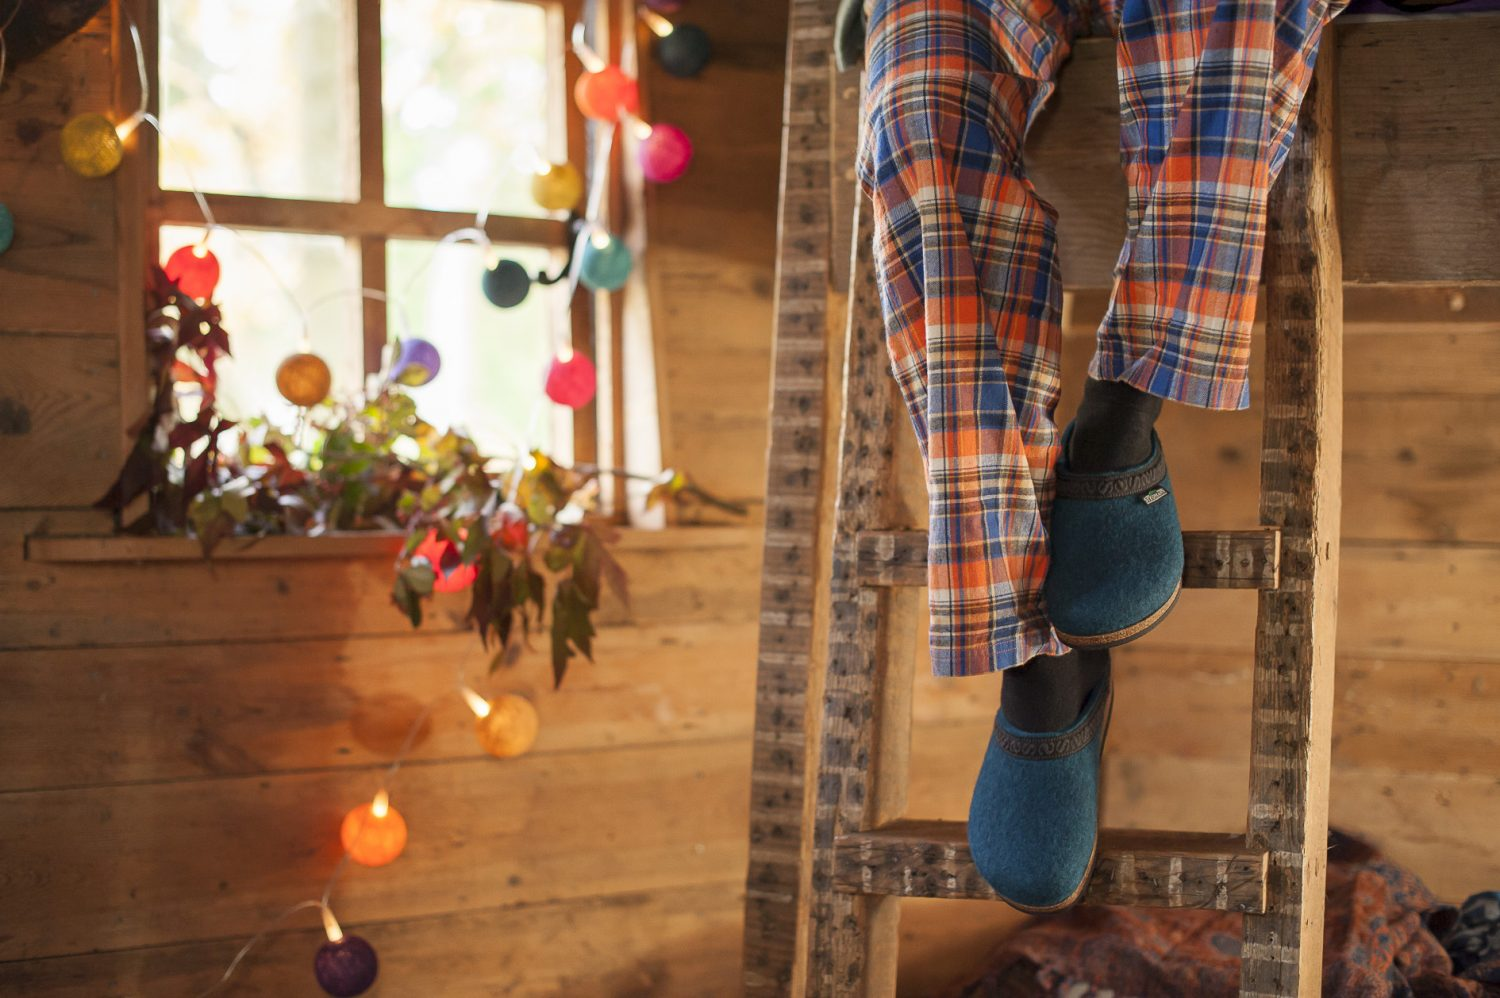 Stegman house clogs, £65, Fire & Felt fireandfelt.com; Wilde lounge pants, £37, Blueblancmange blueblancmange.co.uk